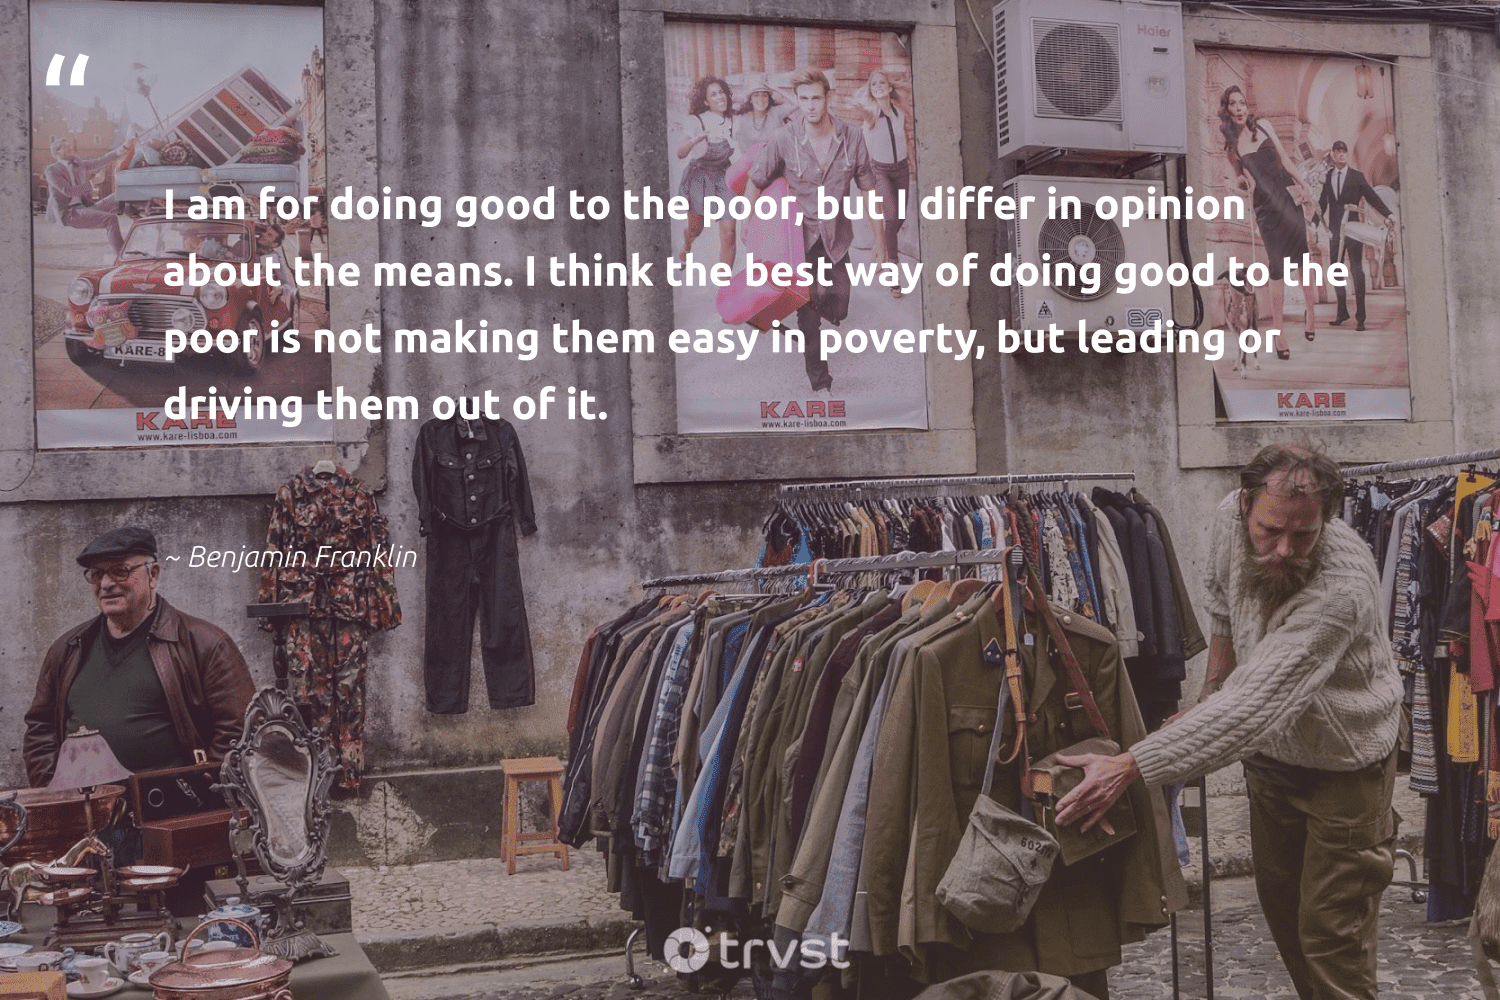 """""""I am for doing good to the poor, but I differ in opinion about the means. I think the best way of doing good to the poor is not making them easy in poverty, but leading or driving them out of it.""""  - Benjamin Franklin #trvst #quotes #poverty #poor #endpoverty #equalrights #inclusion #dogood #equalopportunity #weareallone #ecoconscious #sustainablefutures"""